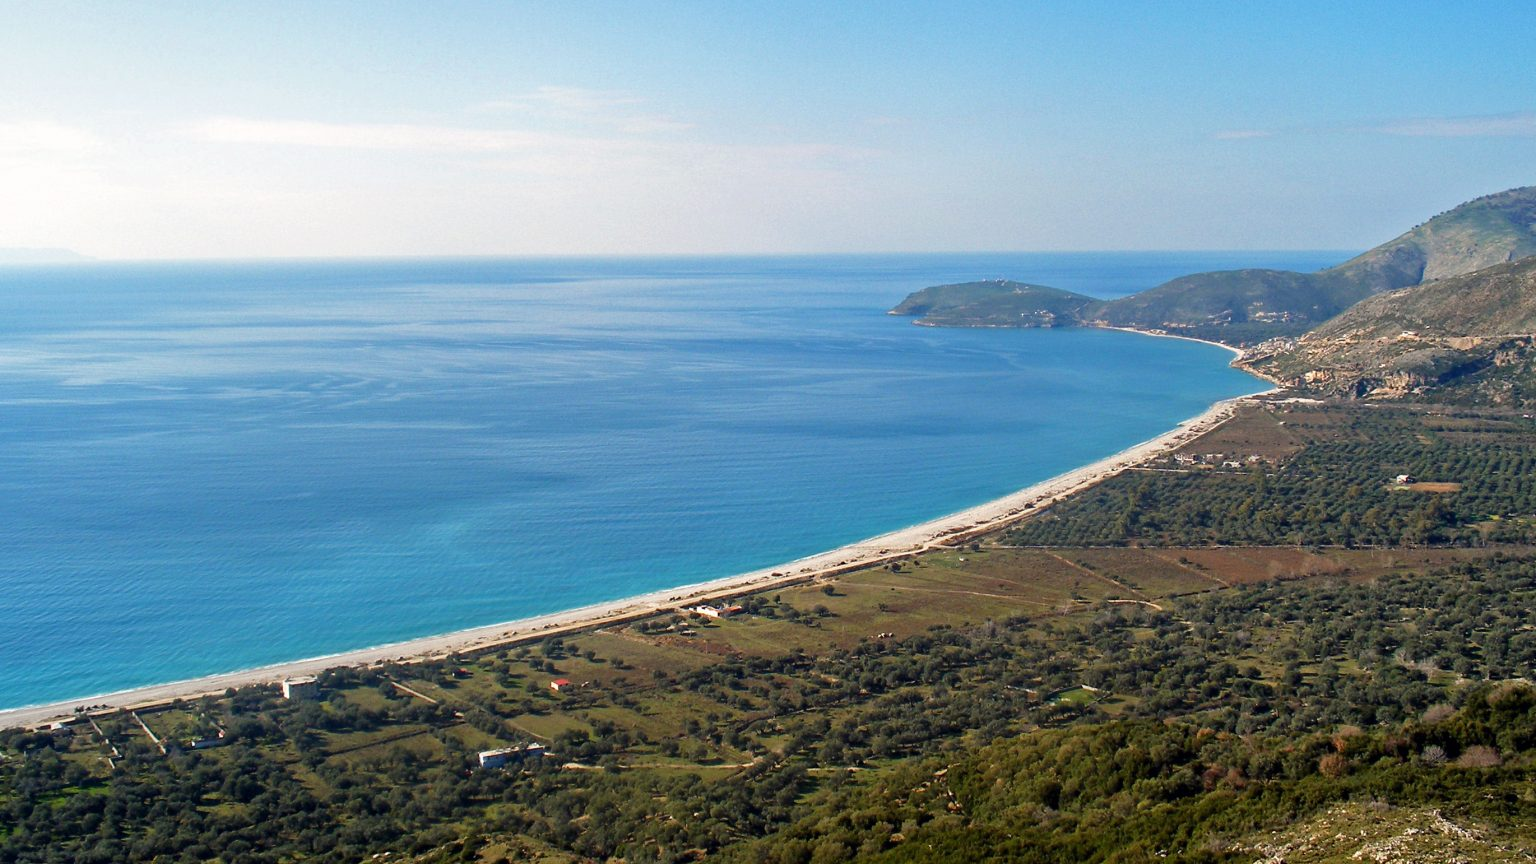 Borsh Beach, Himara, Source: wikimedia.org, Godo Godaj